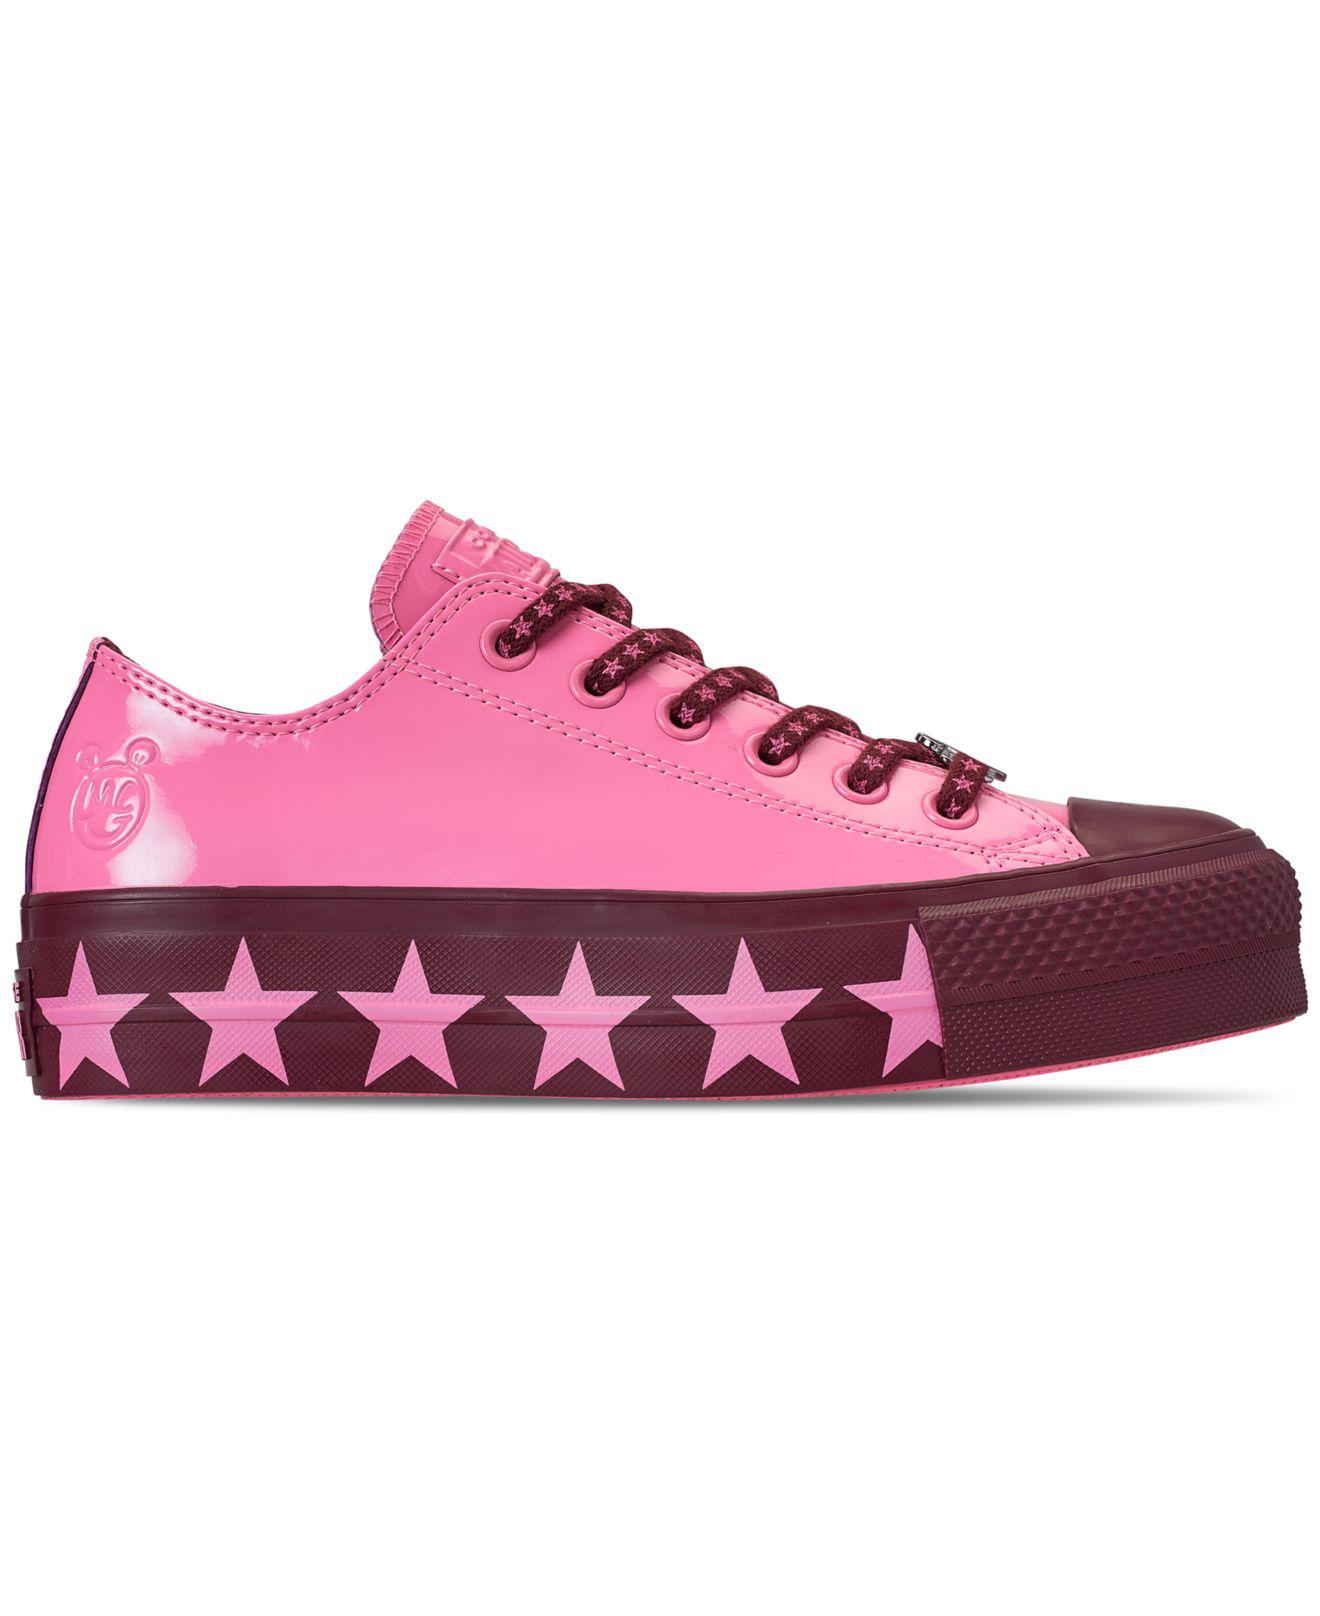 a514f6aa499 Lyst - Converse Chuck Taylor All Star X Miley Cyrus Ox Lift Casual Sneakers  From Finish Line in Pink - Save 28%